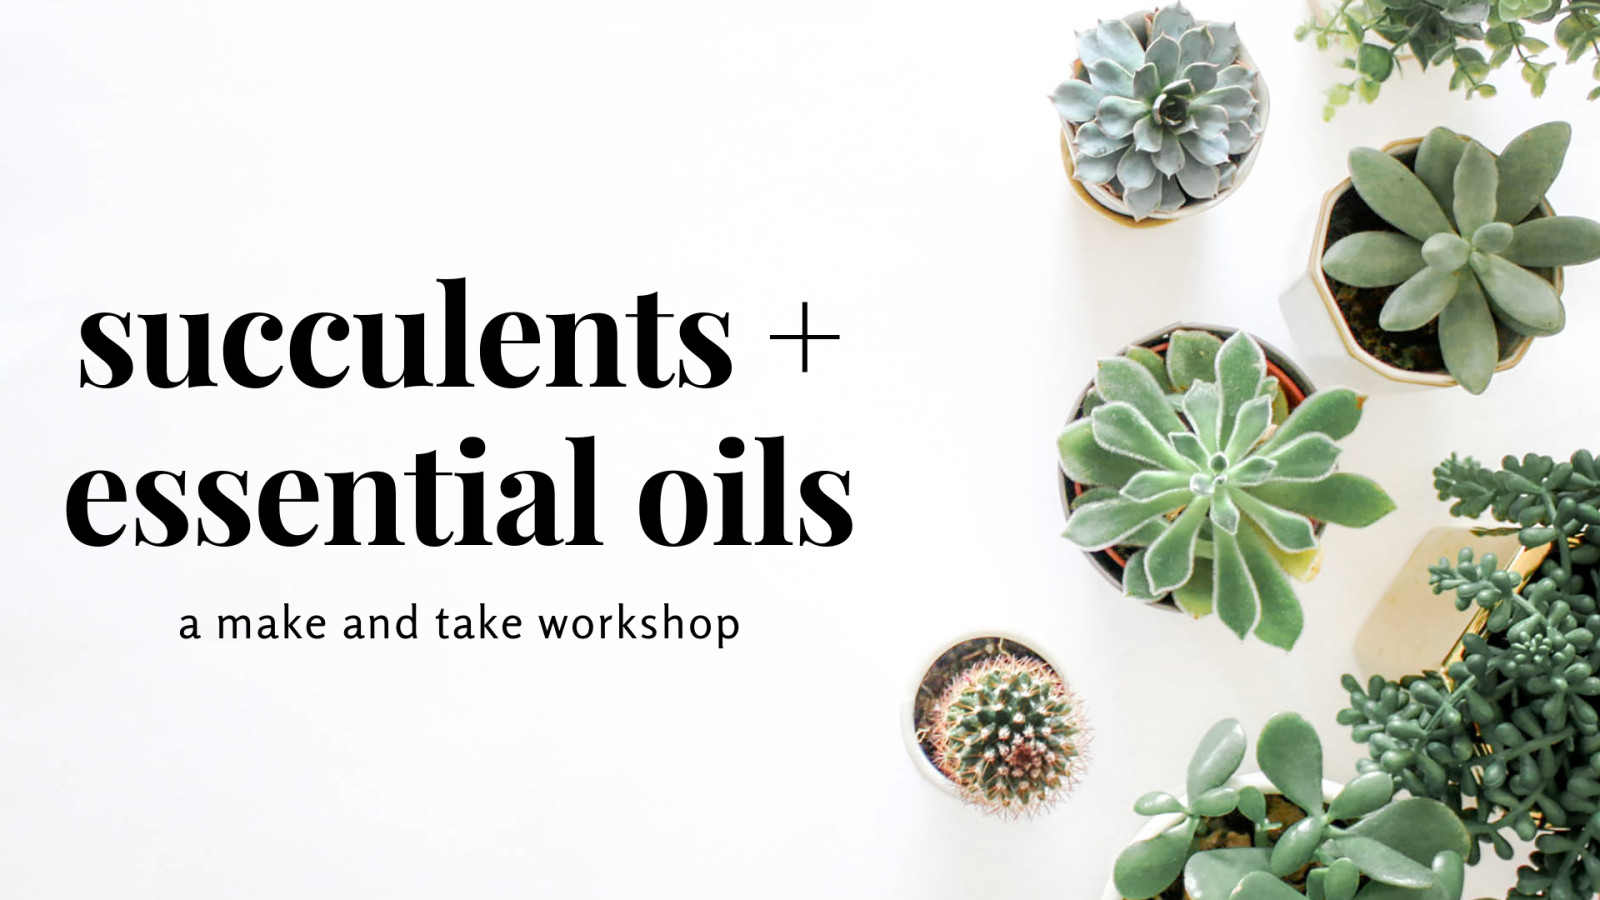 succulents + oils